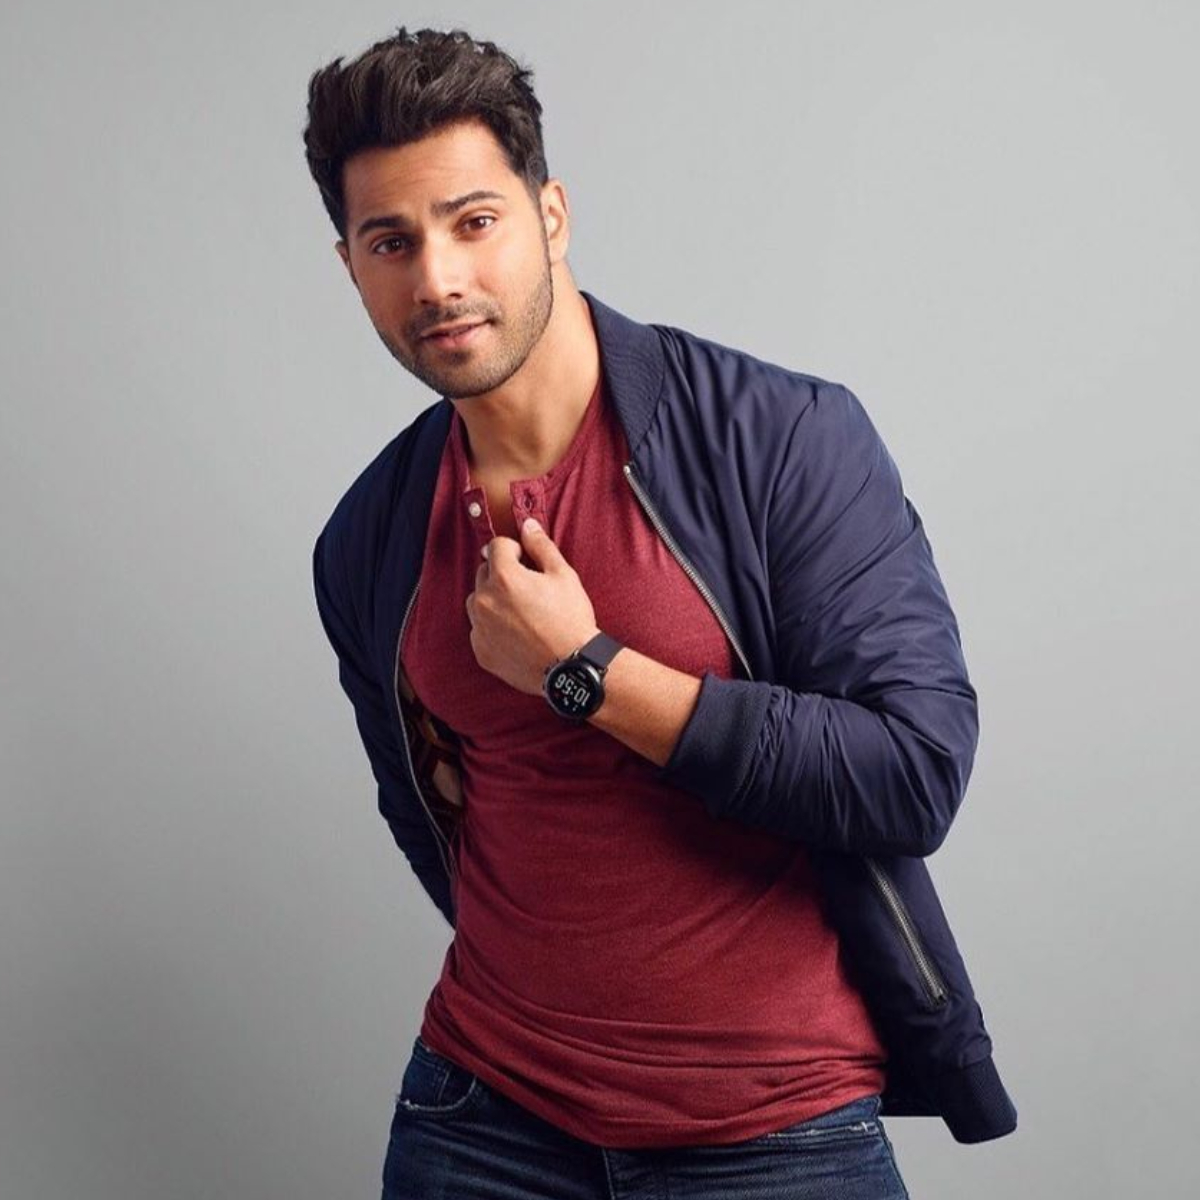 varun_dhawan_on_jnu_violence_i_hope_those_involved_in_this_incident_get_severe_punishment_as_soon_as_possible